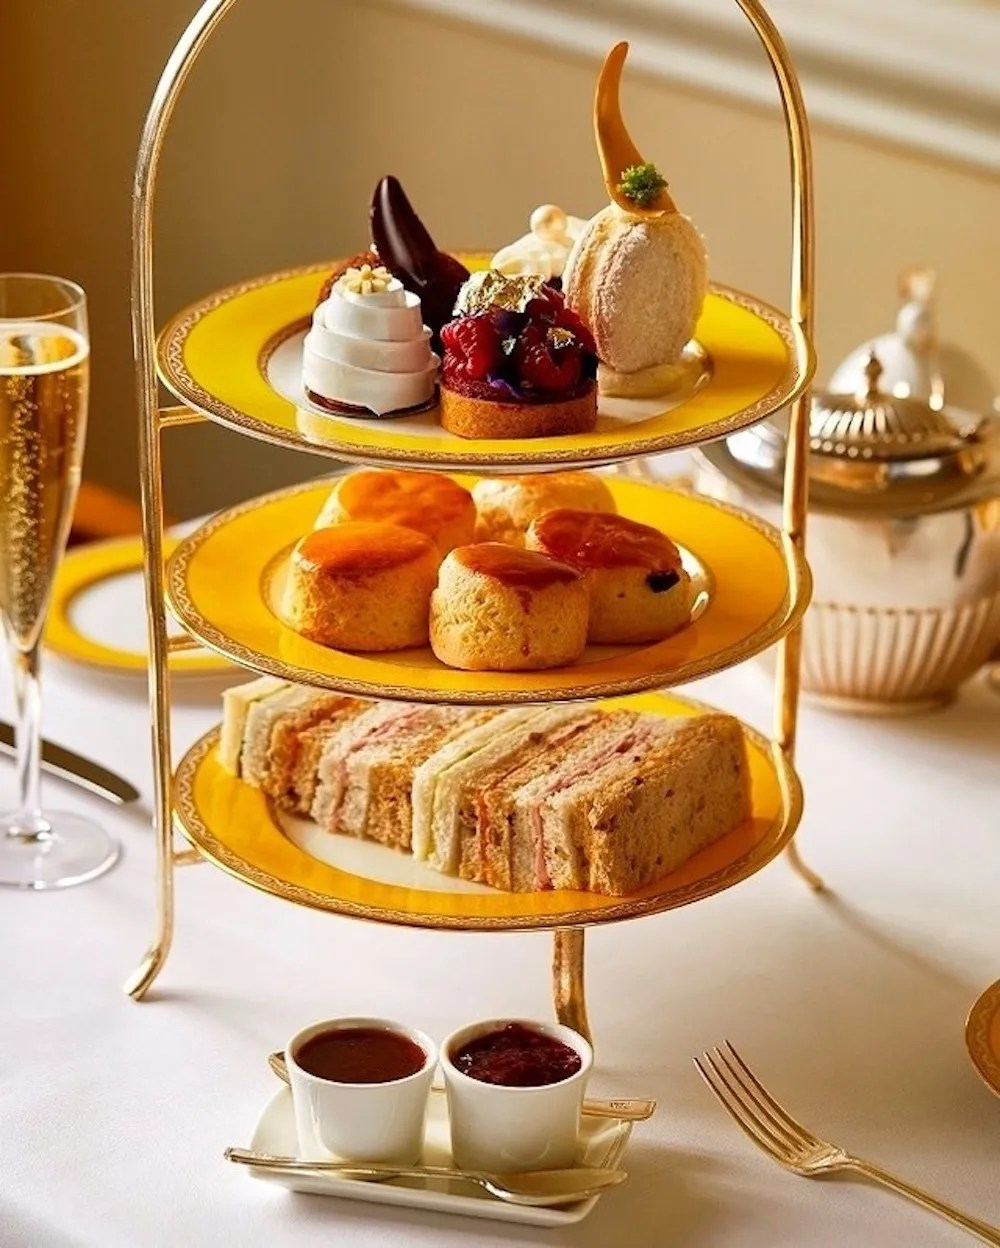 Afternoon Teas in London - The Goring Hotel